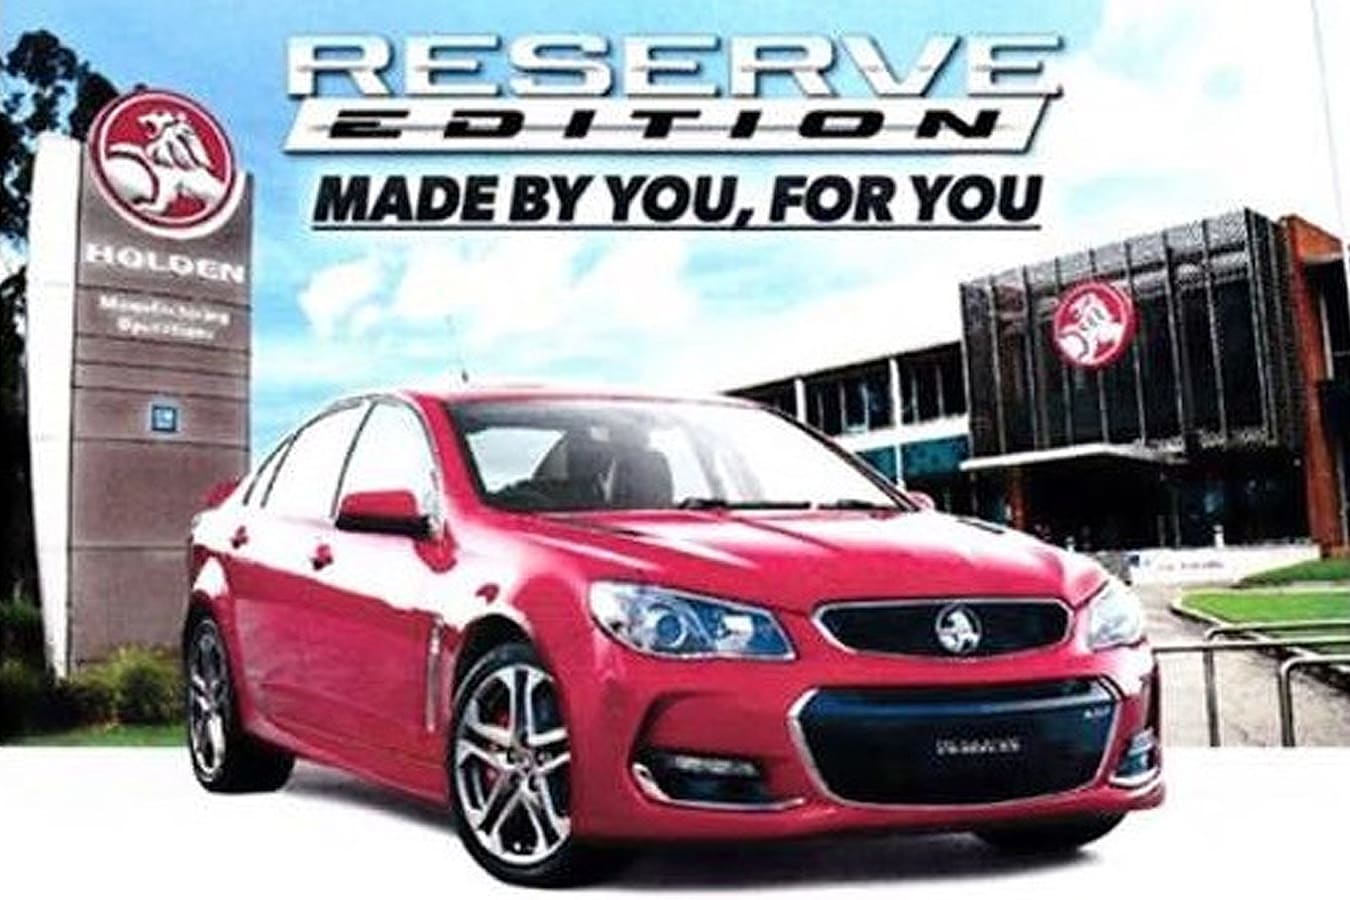 Holden Commodore Reserve edition